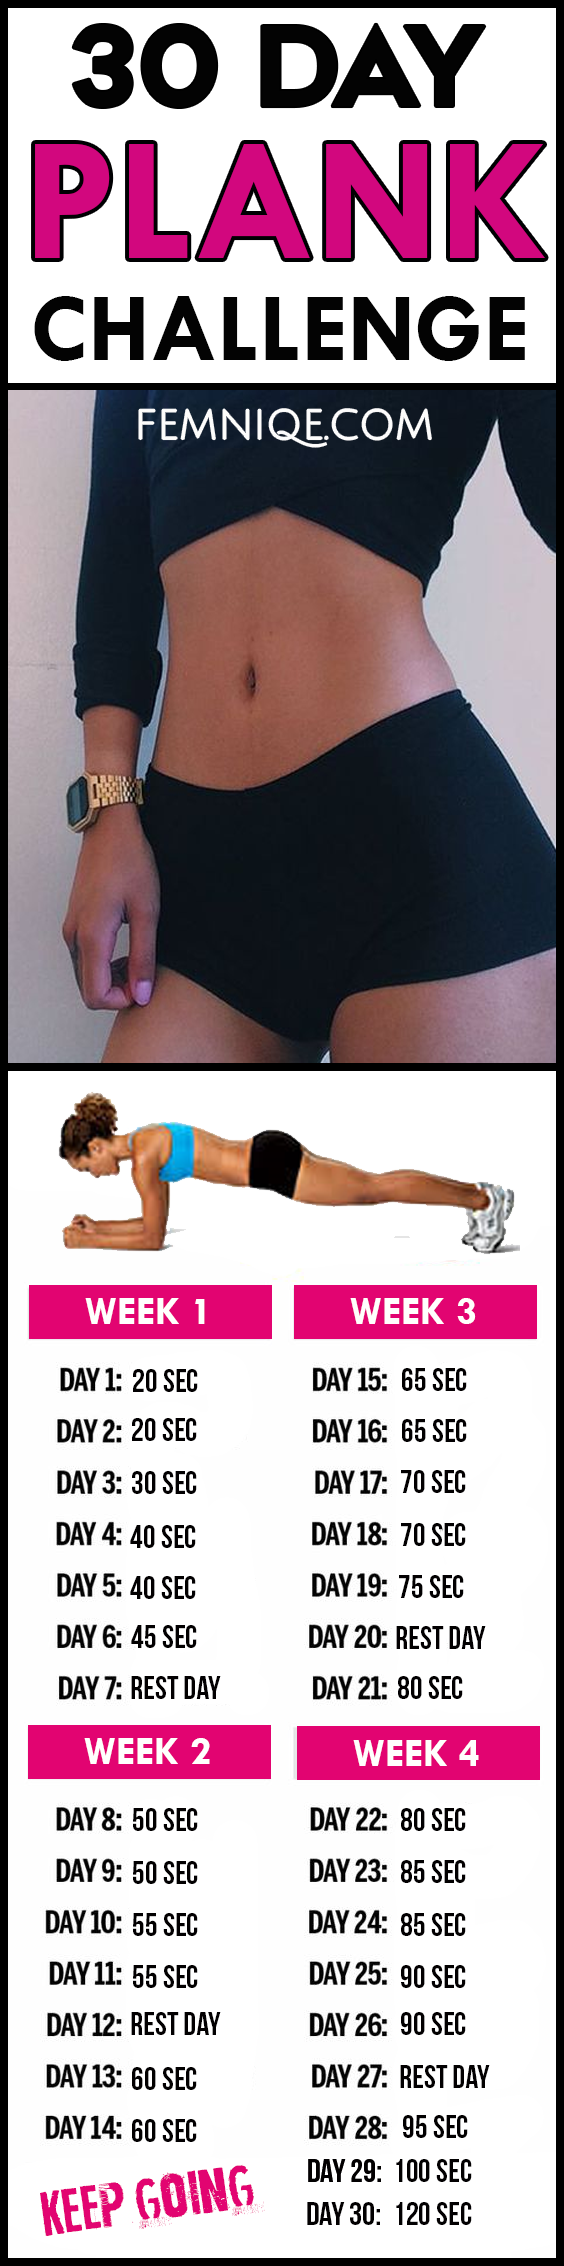 Try This 8-Week Plank Challenge To Get Stronger From Head To Toe Try This 8-Week Plank Challenge To Get Stronger From Head To Toe new images